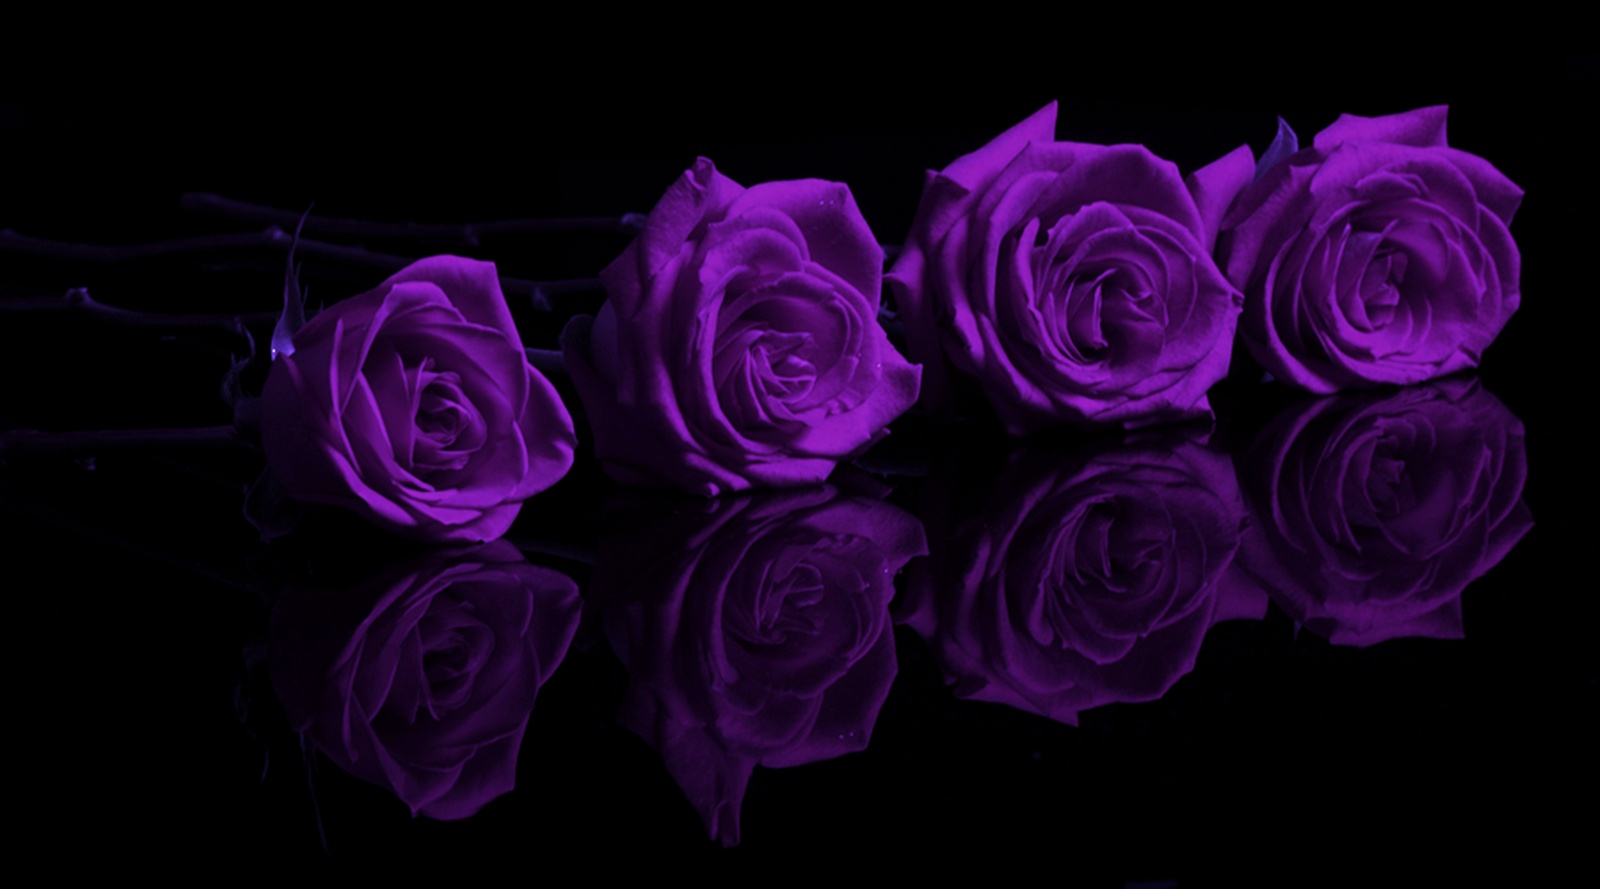 Dark Purple Roses Wallpaper - WallpaperSafari